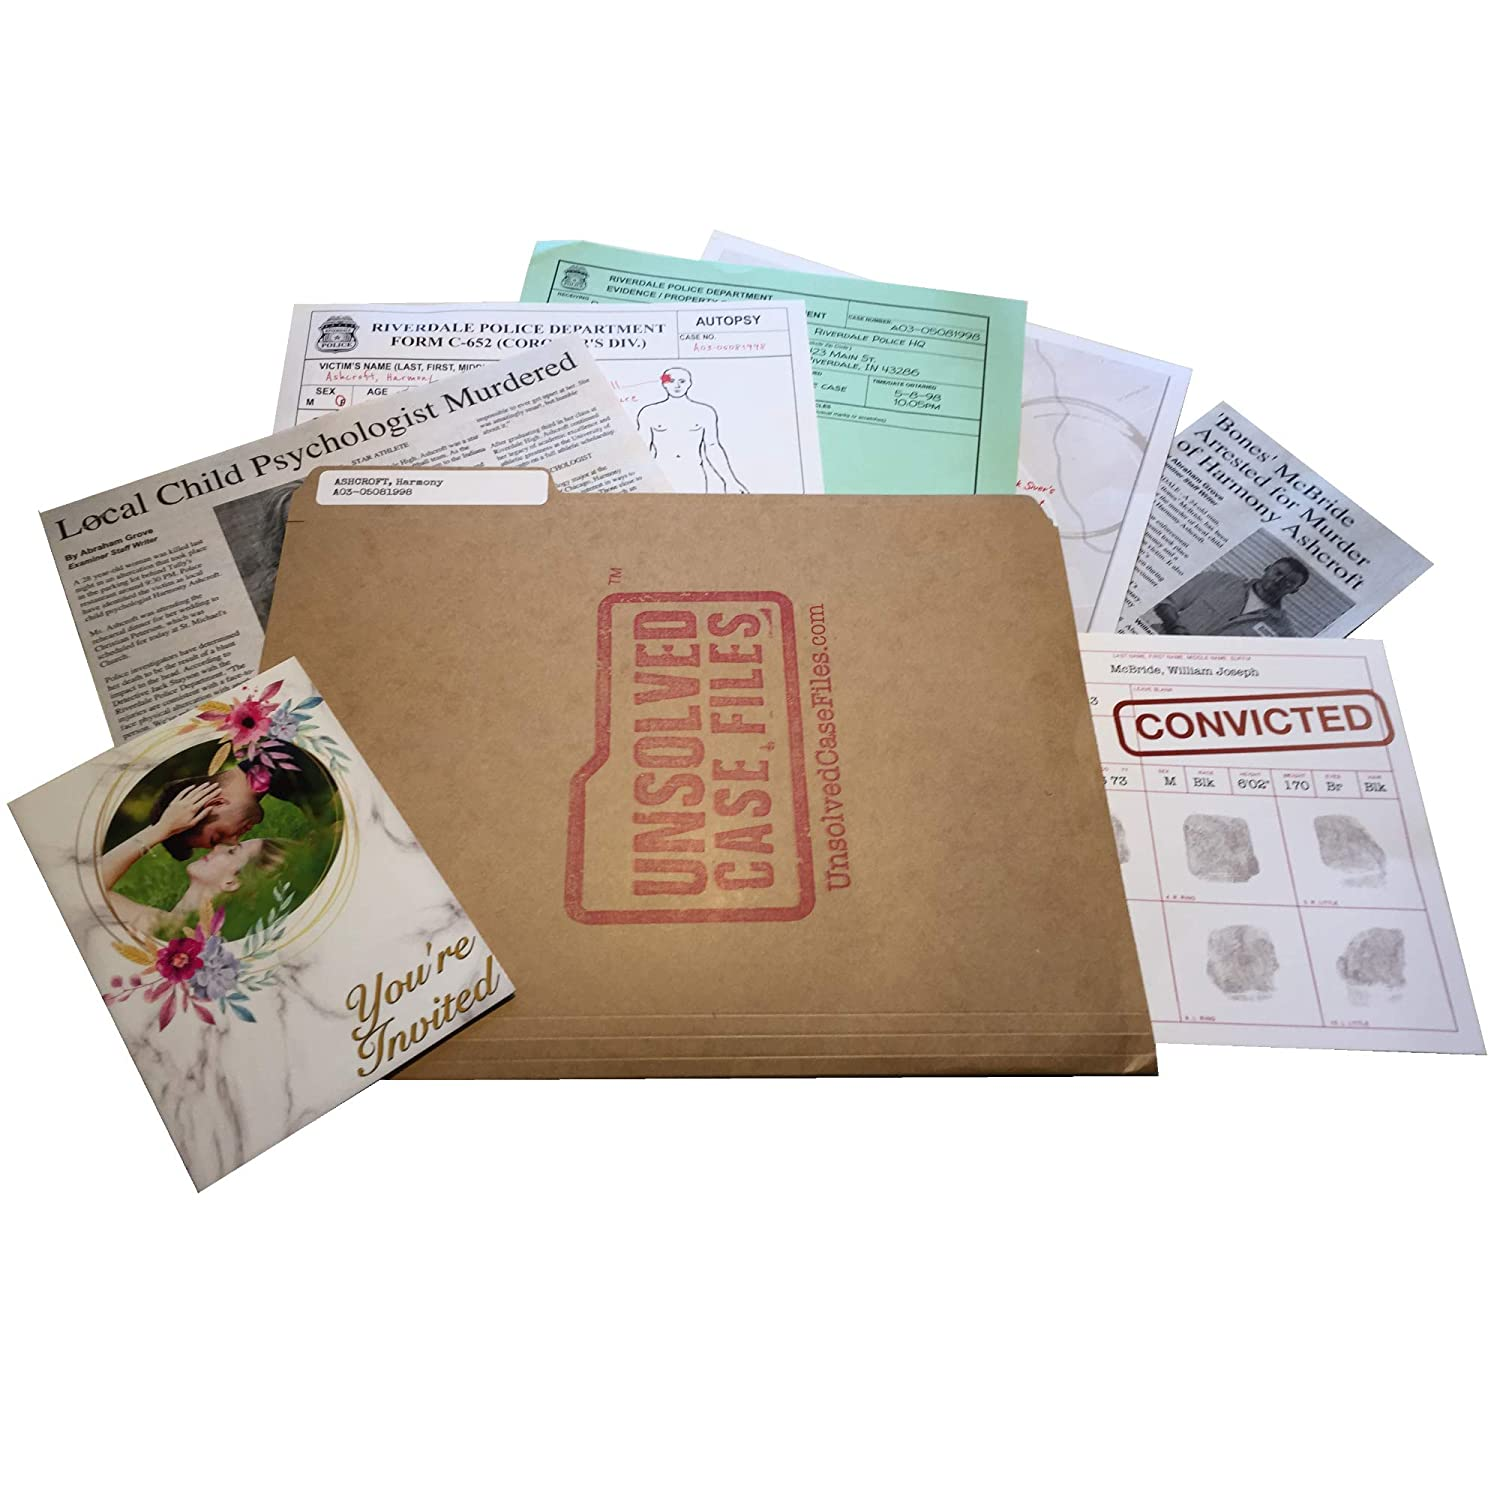 UNSOLVED CASE FILES | Ashcroft, Harmony - Cold Case Murder Mystery Game |  Can You Solve The Crime?